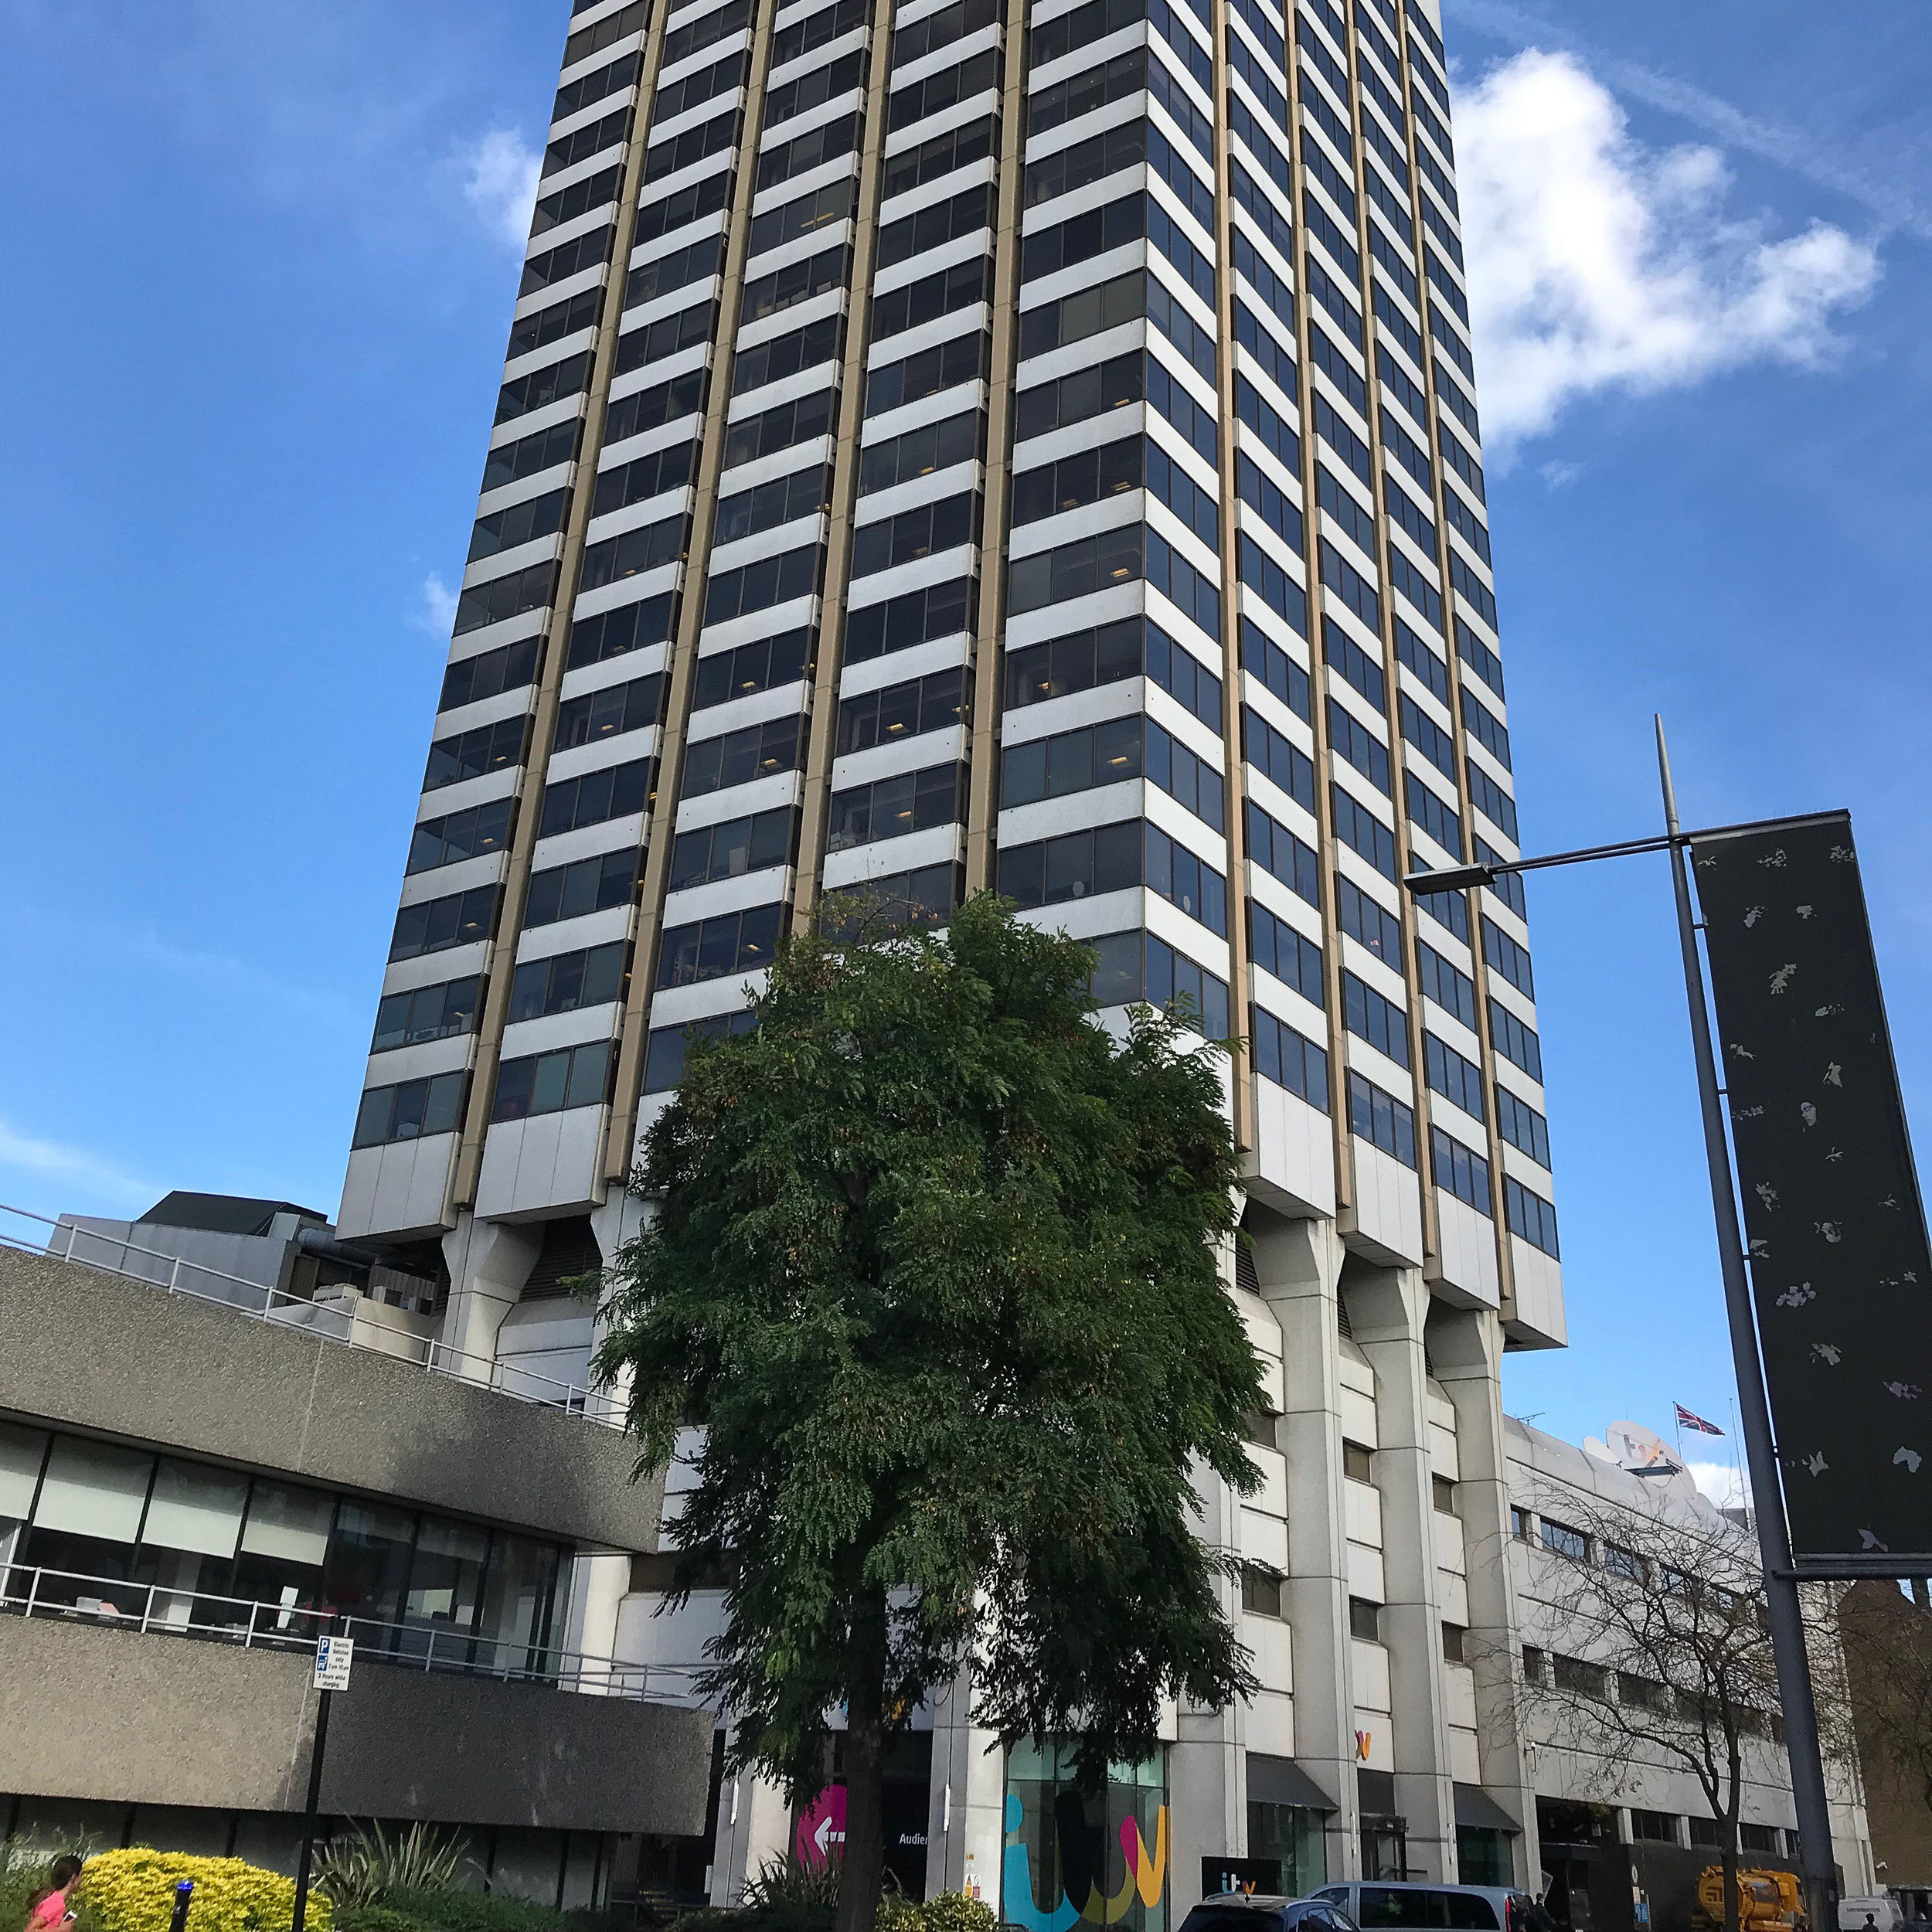 The ITV Building, South Bank, London - R L Crafter & Co Ltd have been working within the ITV building for in excess of 25 Years and we are pleased to say have become their preferred contractor for Mechanical Plumbing and Heating services.